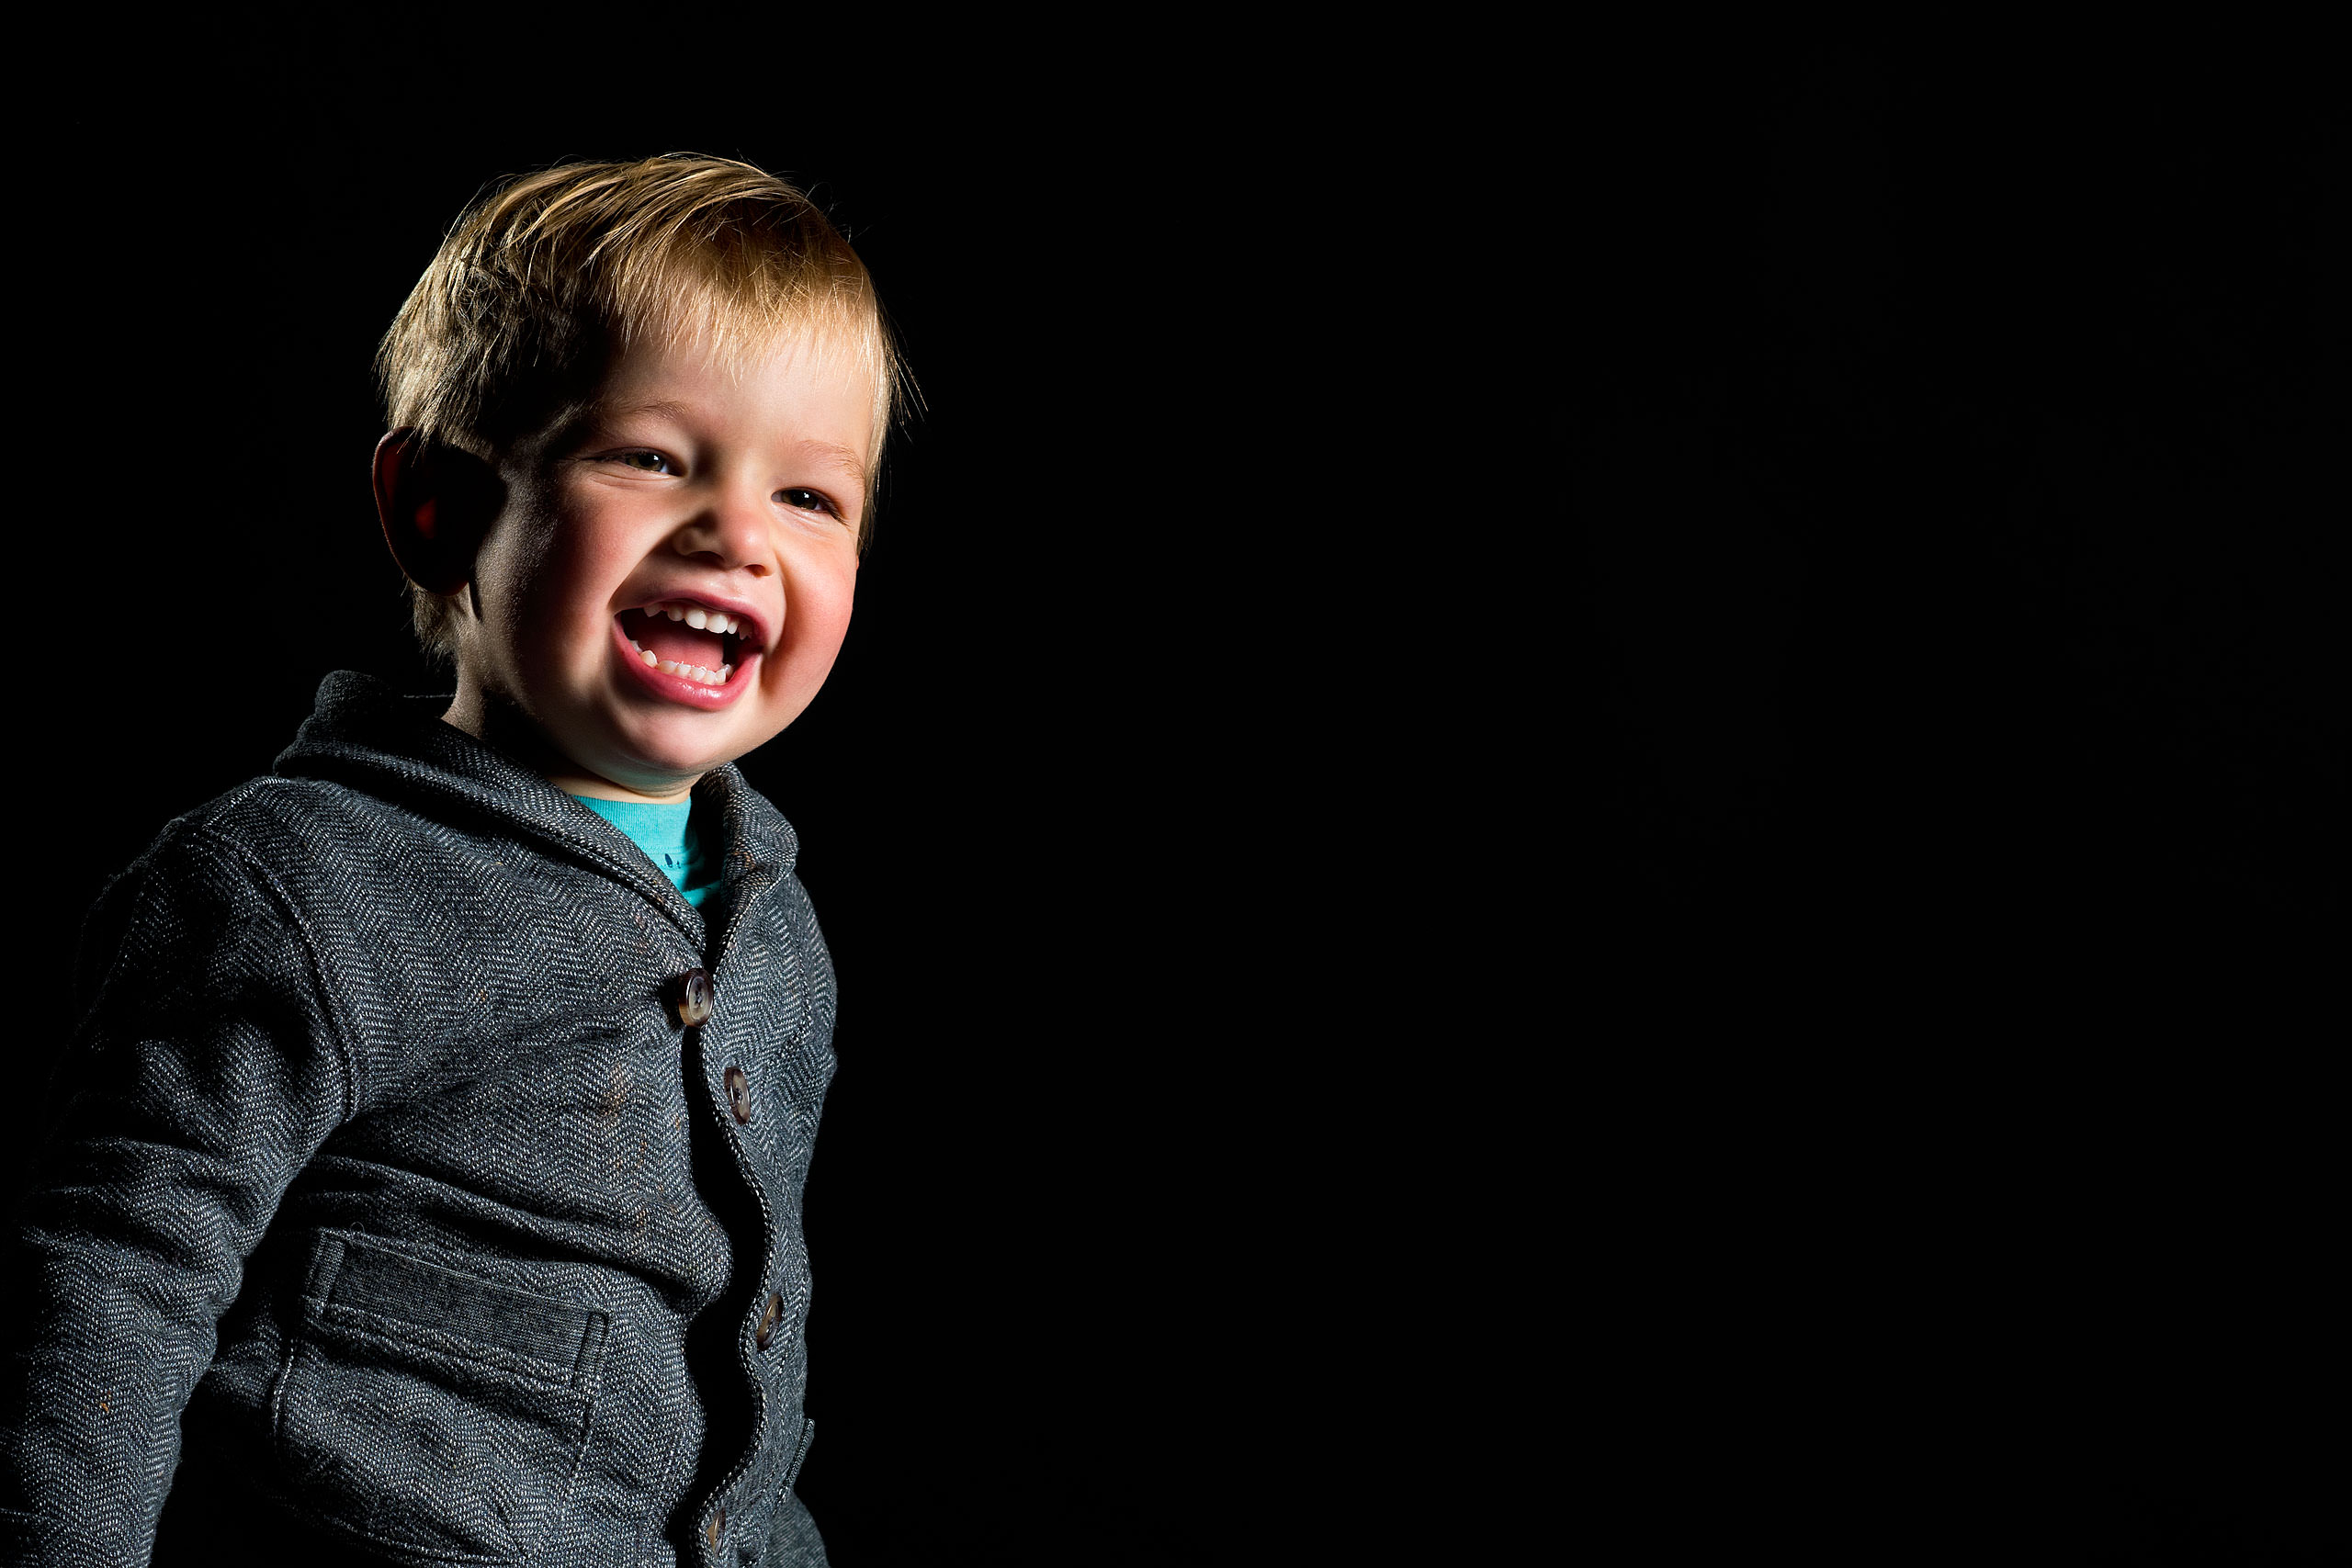 Young boy dressed in nice clothes against a black backdrop smiling by top family portrait photographer sean leblanc